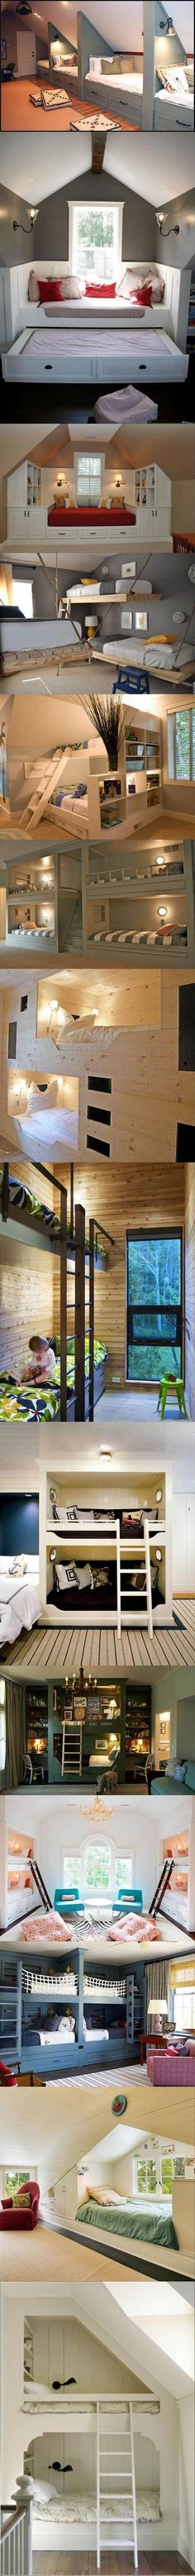 Funny pictures about The Coolest Bunk Beds In Existence. Oh, and cool pics about The Coolest Bunk Beds In Existence. Also, The Coolest Bunk Beds In Existence photos. Bunk Rooms, Attic Rooms, Bedrooms, Attic Loft, Attic Playroom, Attic Library, Attic Apartment, Bedroom Loft, Upstairs Loft